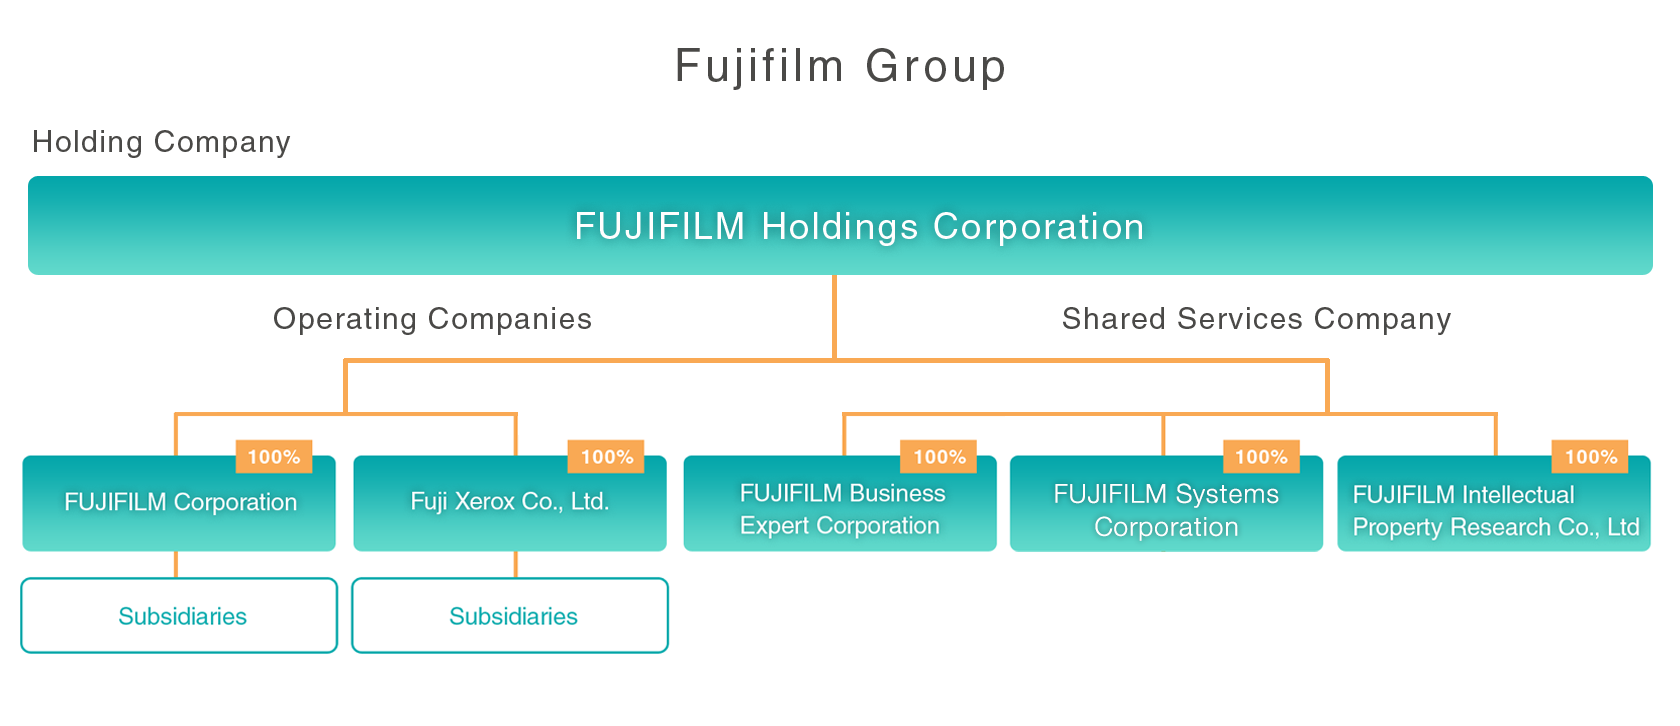 [Image]FUJIFILM Group